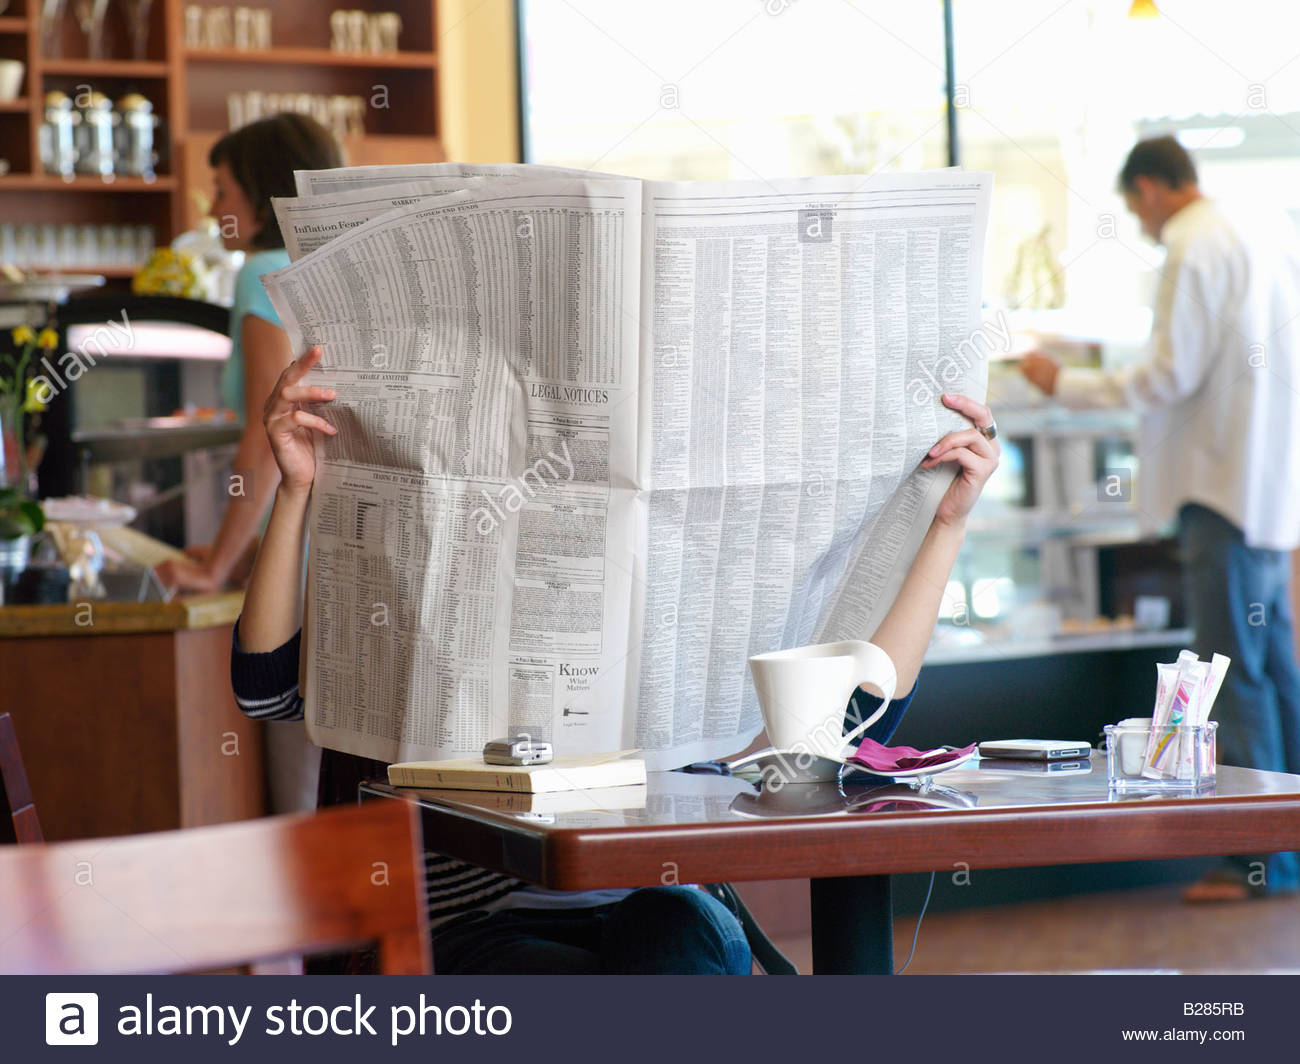 Woman with face obscured by newspaper in cafe - Stock Image